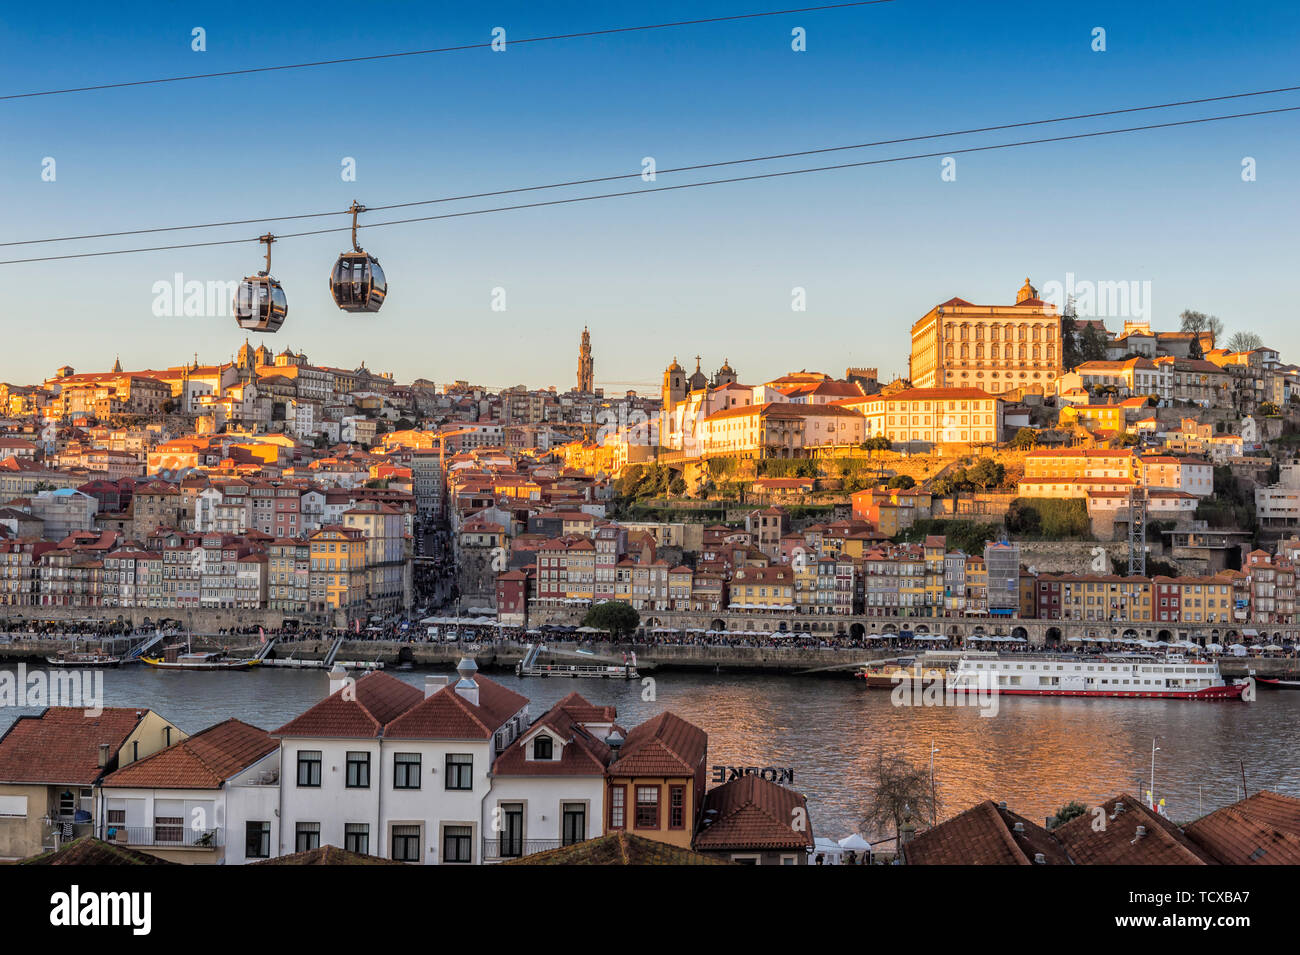 Sunset over Ribeira district and former Episcopal Palace, UNESCO World Heritage Site, Porto, Portugal, Europe Stock Photo